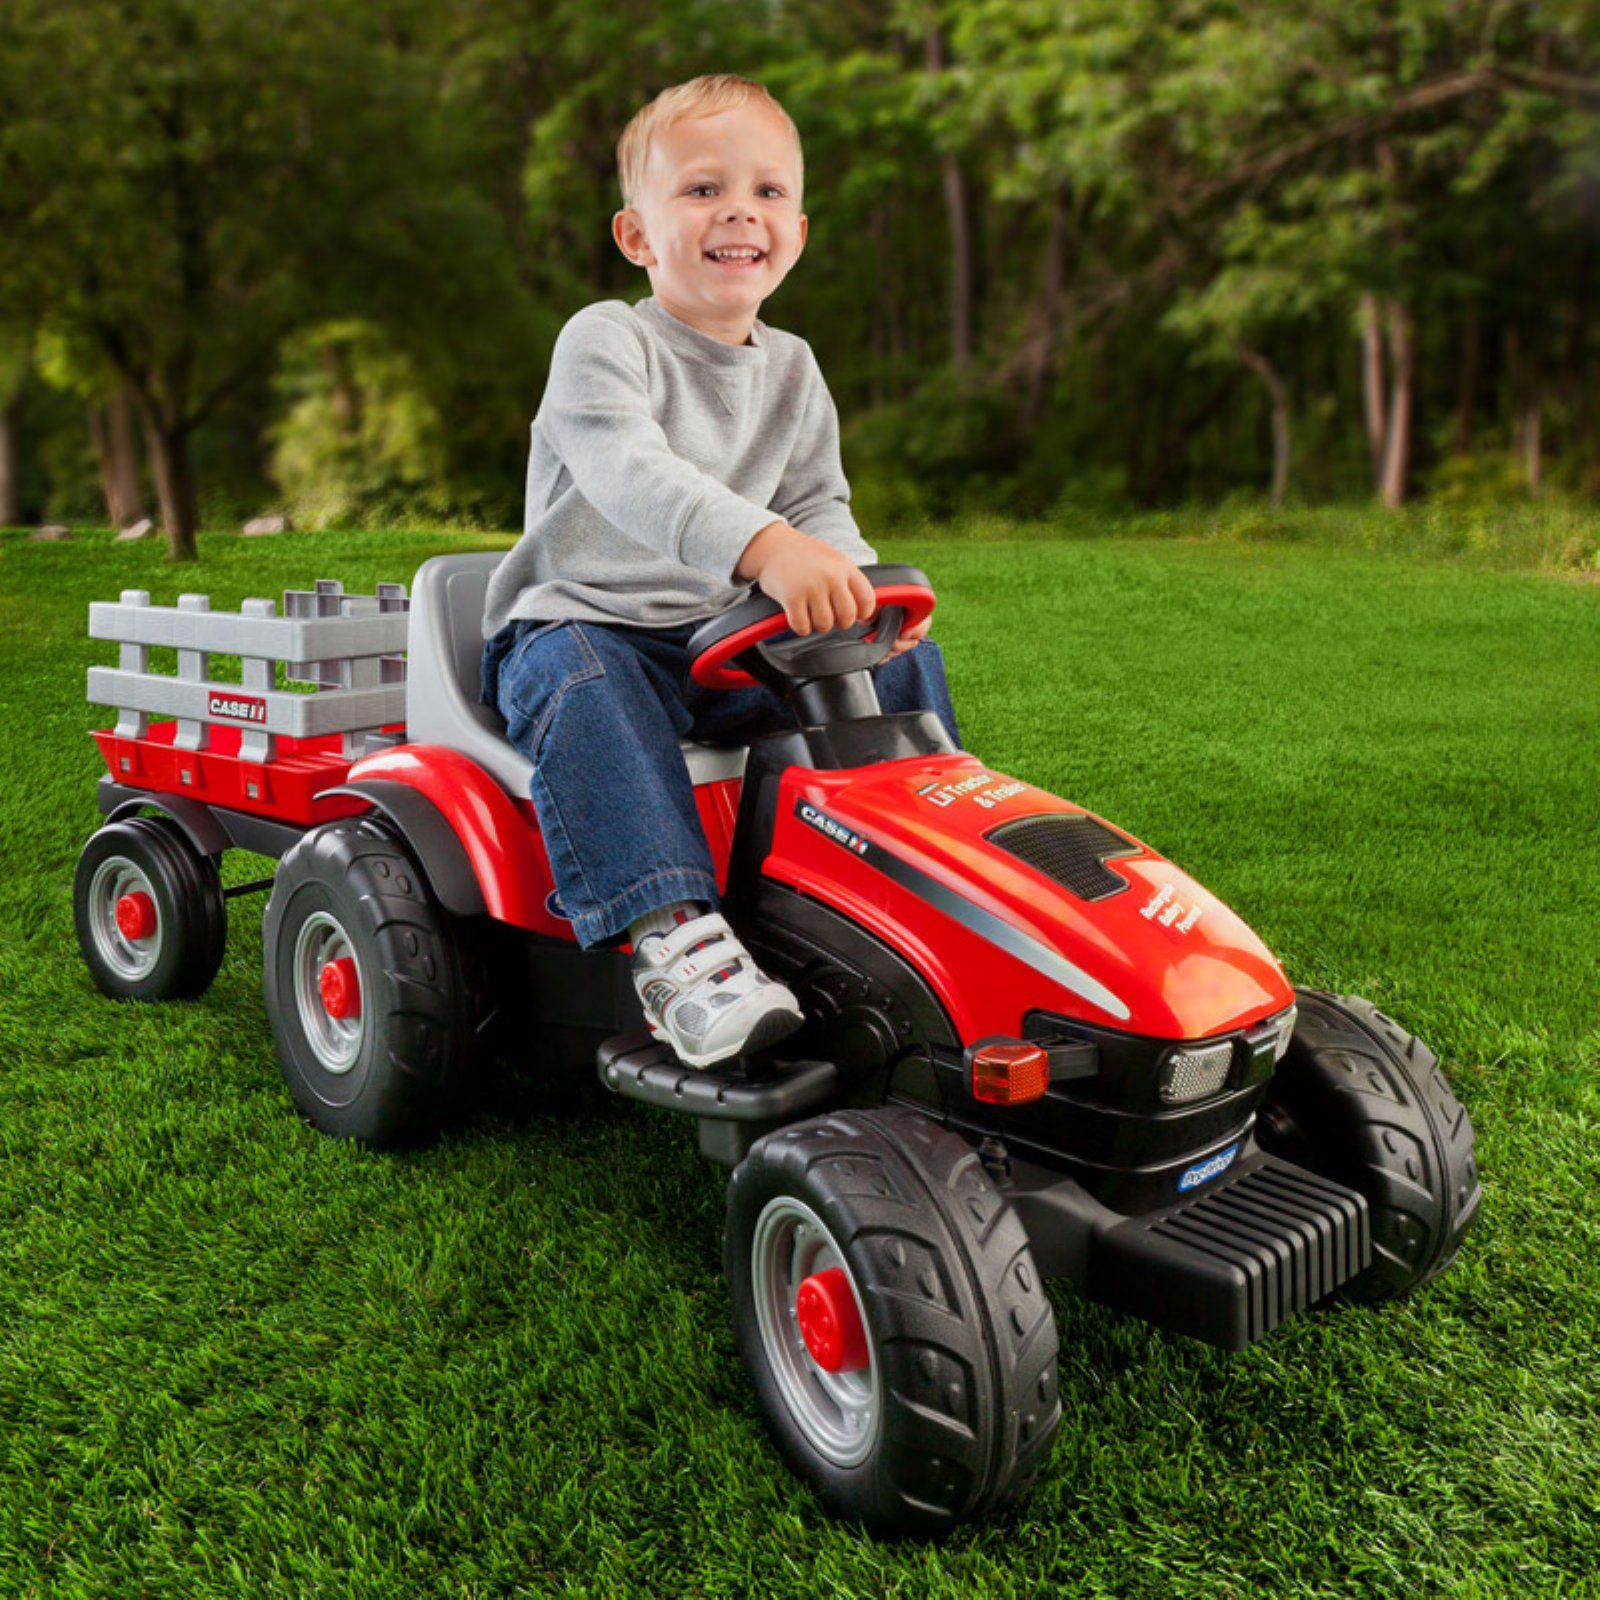 Peg Perego Case Ih Lil Tractor Trailer Battery Ed Riding Toy